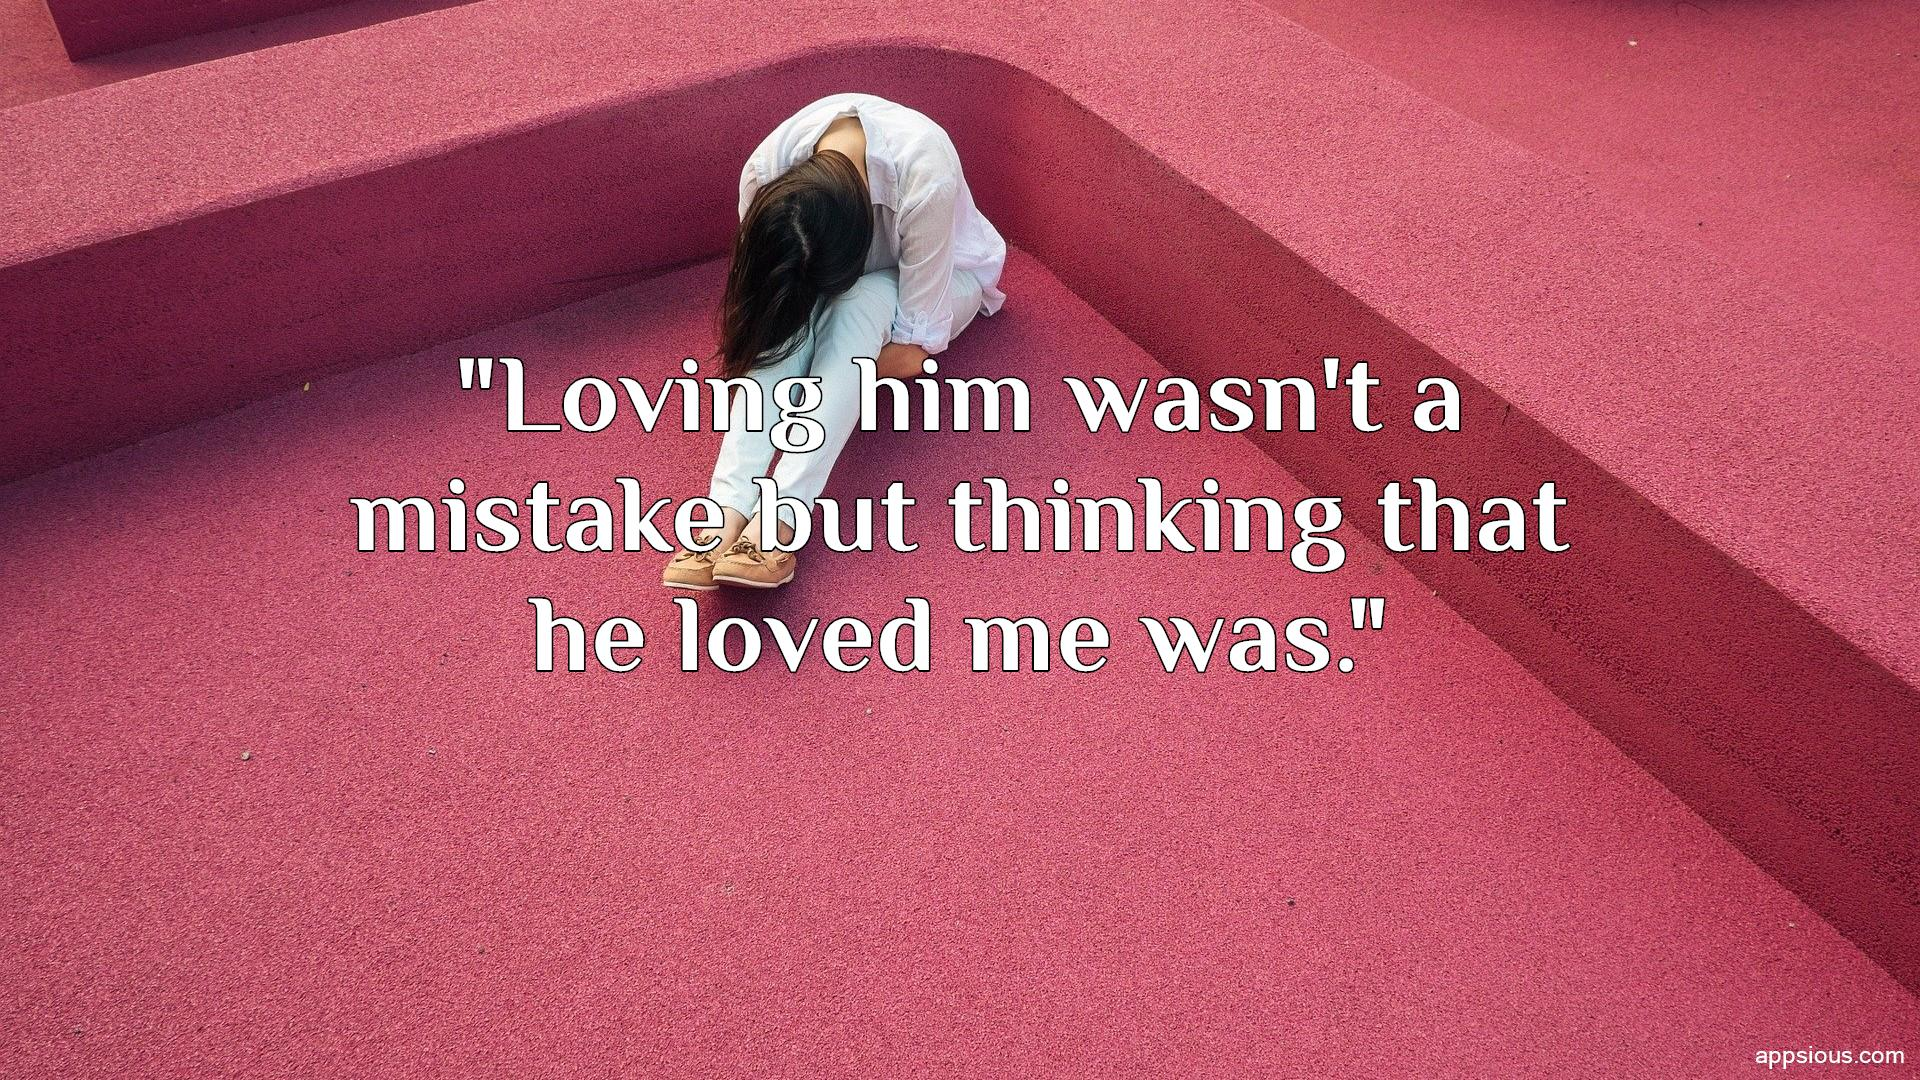 Loving him wasn't a mistake but thinking that he loved me was.